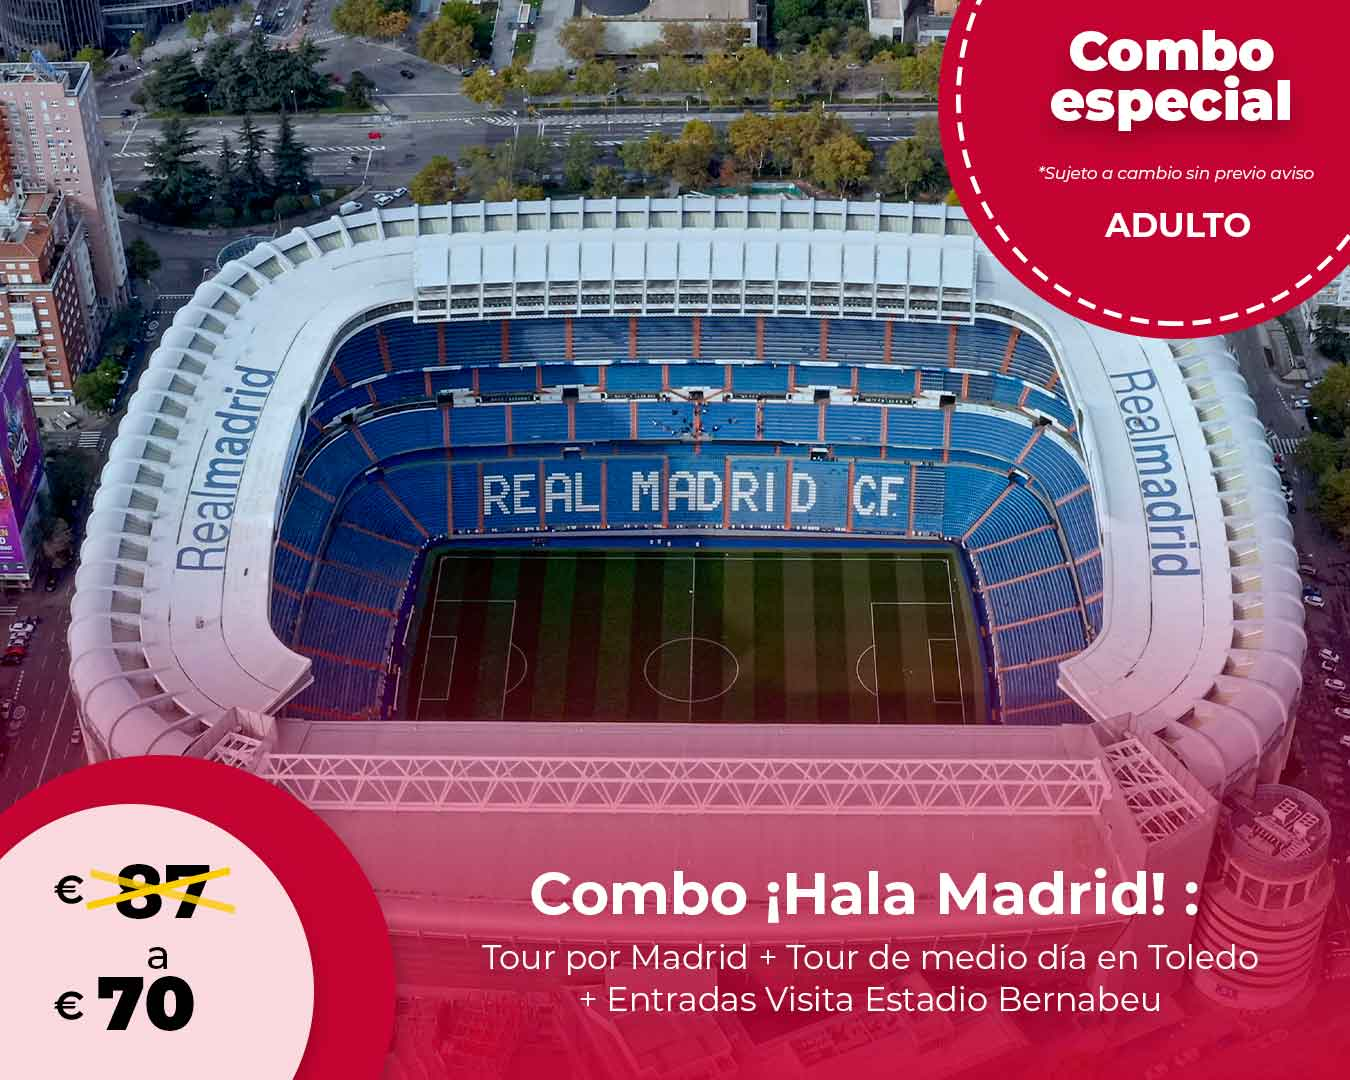 Combo ¡Hala Madrid!